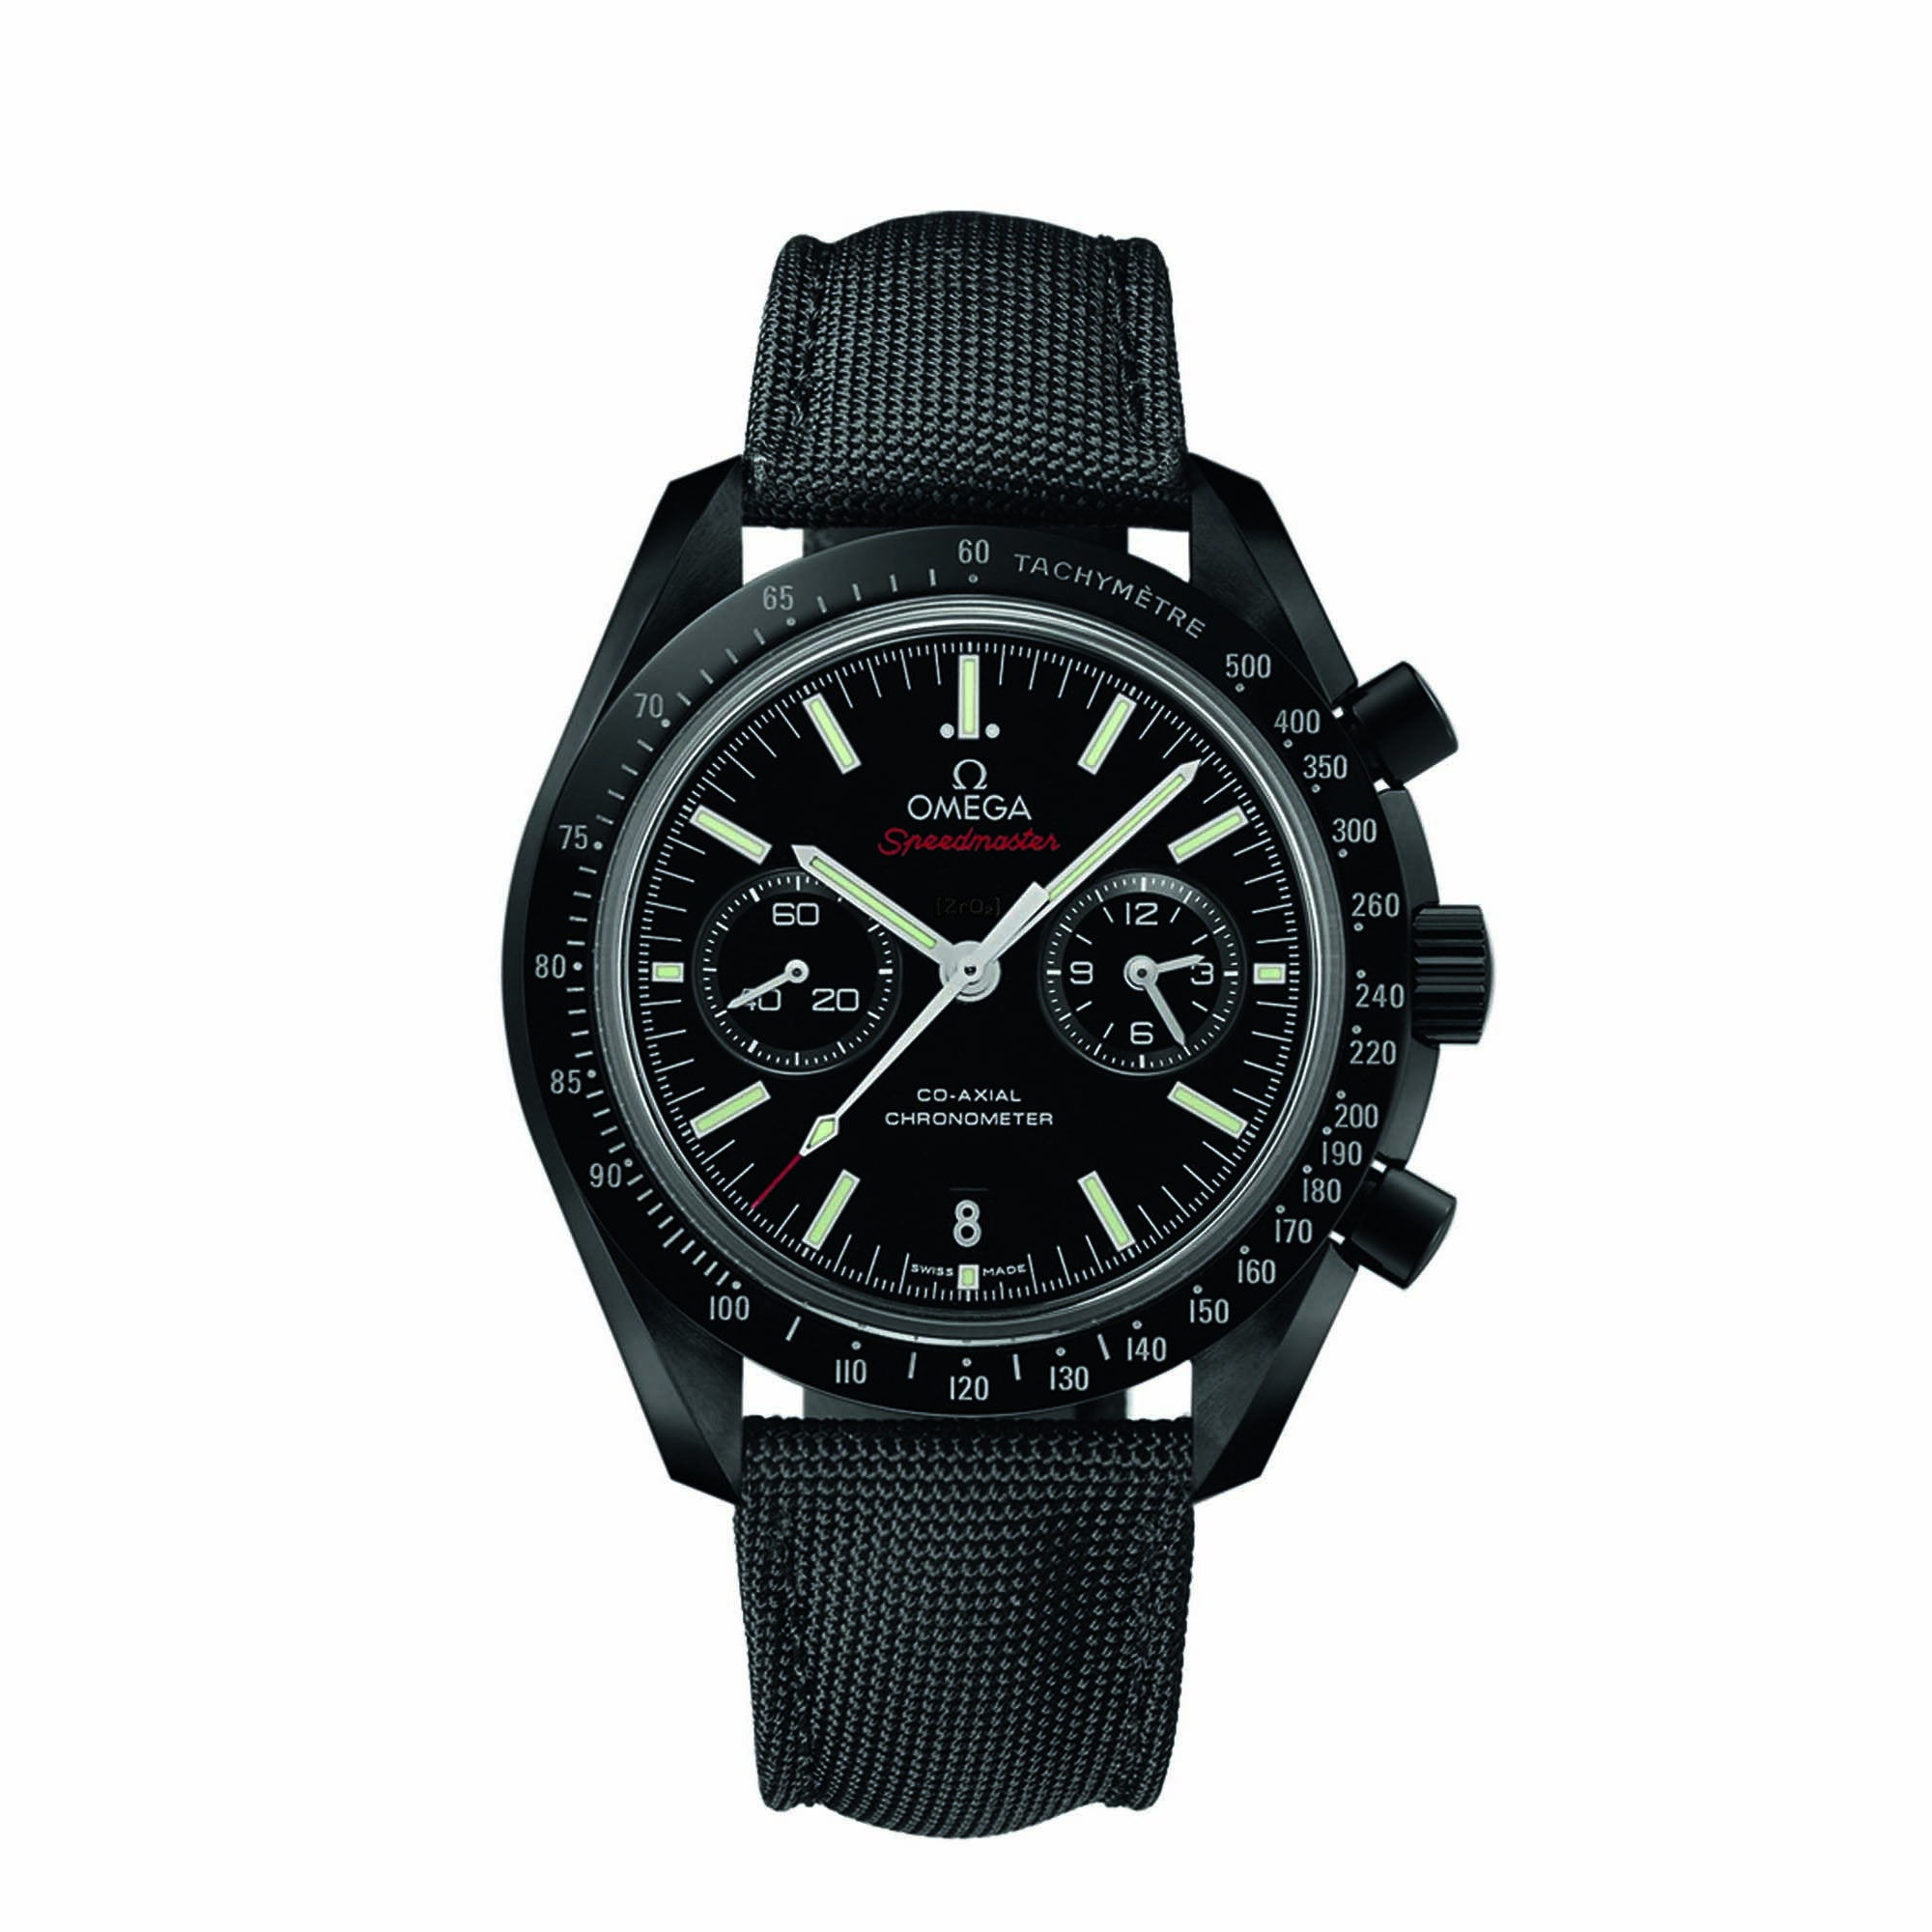 Moonwatch Omega Co-Axial Chronograph 44.25 mm